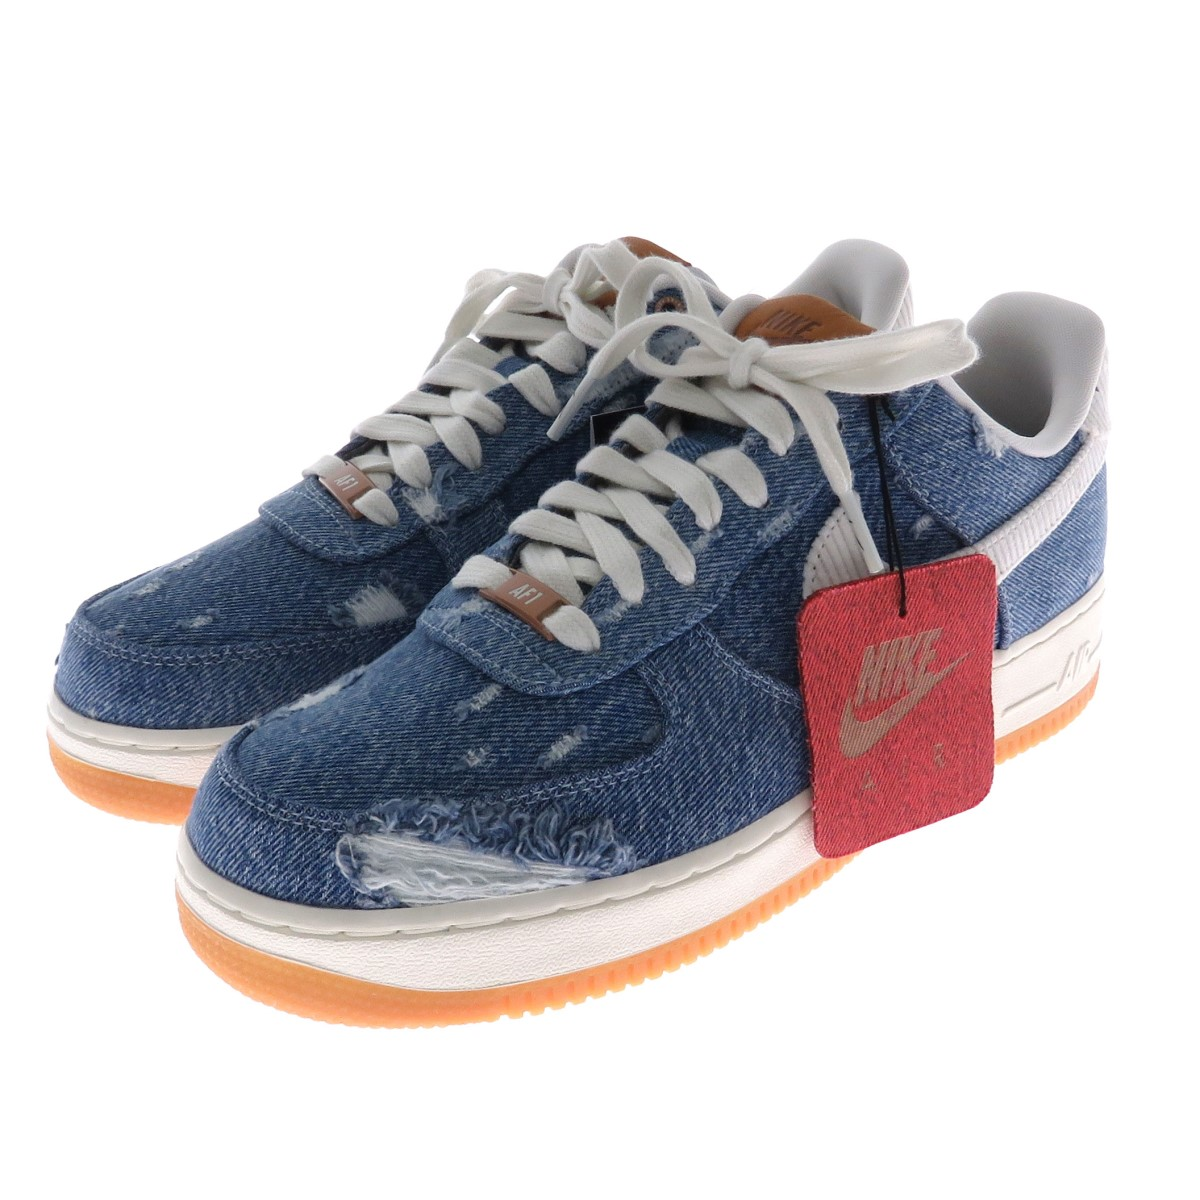 nike air force 1 levis low